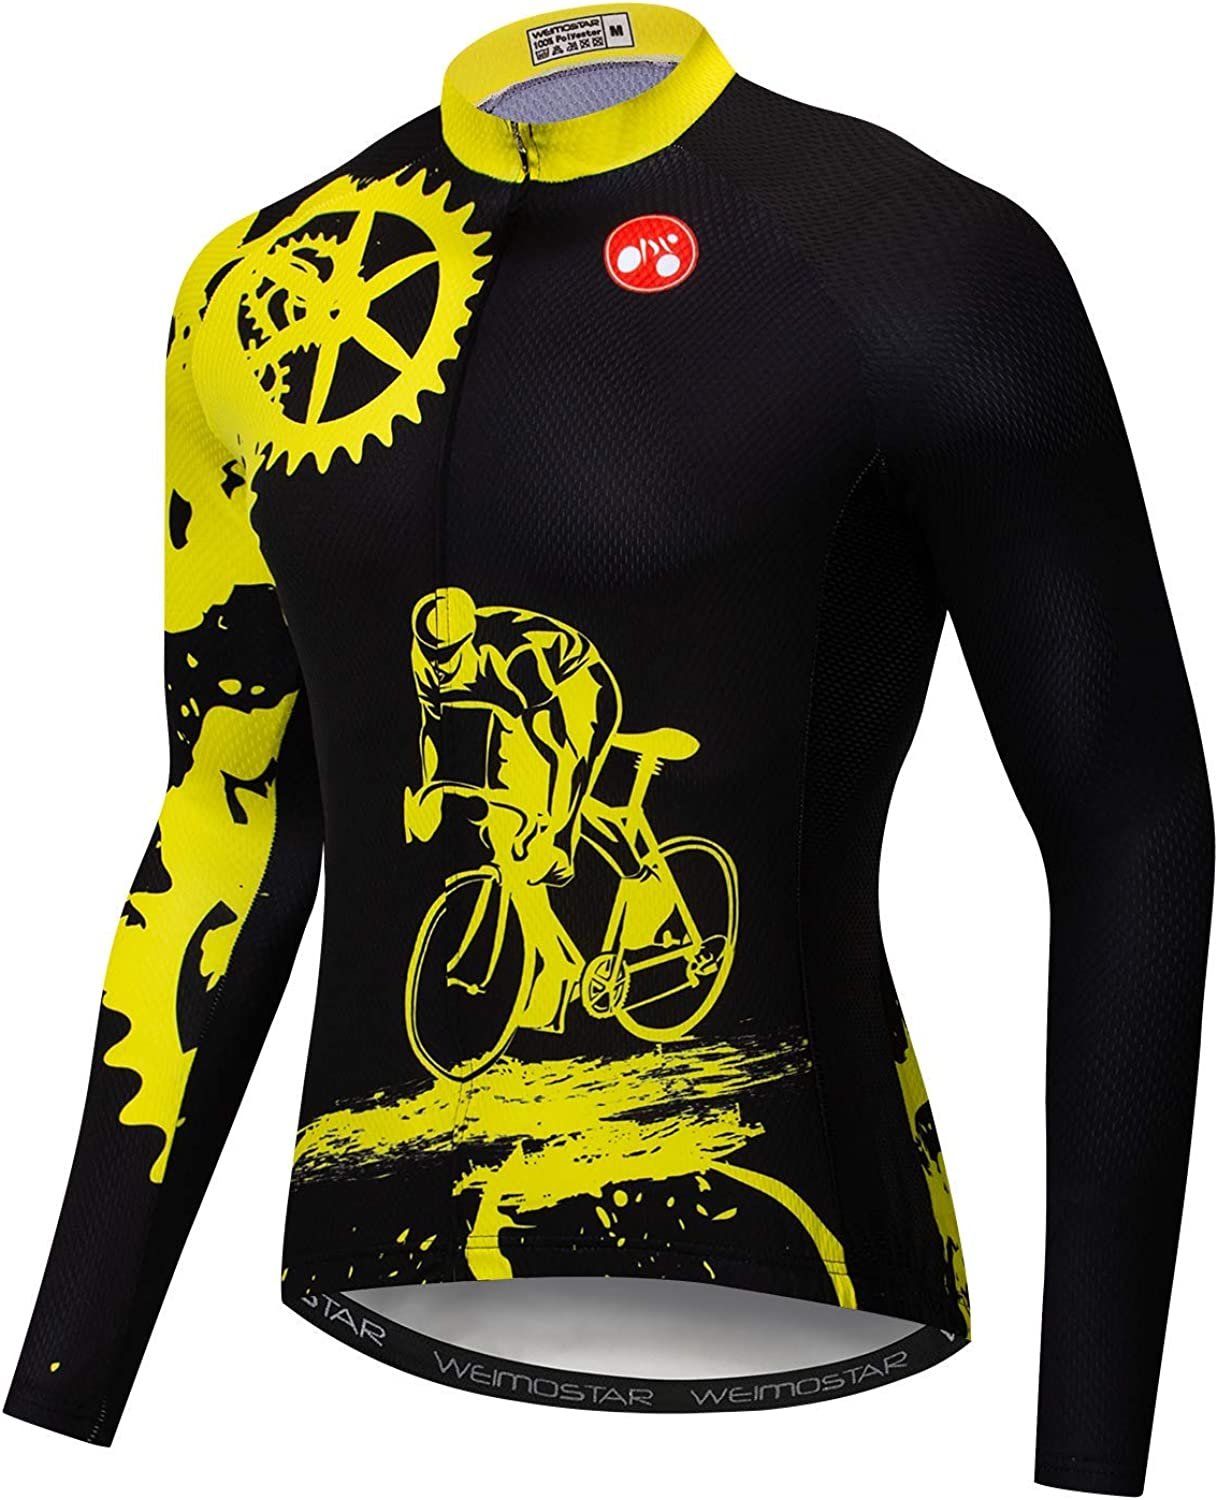 Weimomonkey Cycling Jersey Men's Breathable Long Sleeve Reflective Bicycle Shirts MTB Tops